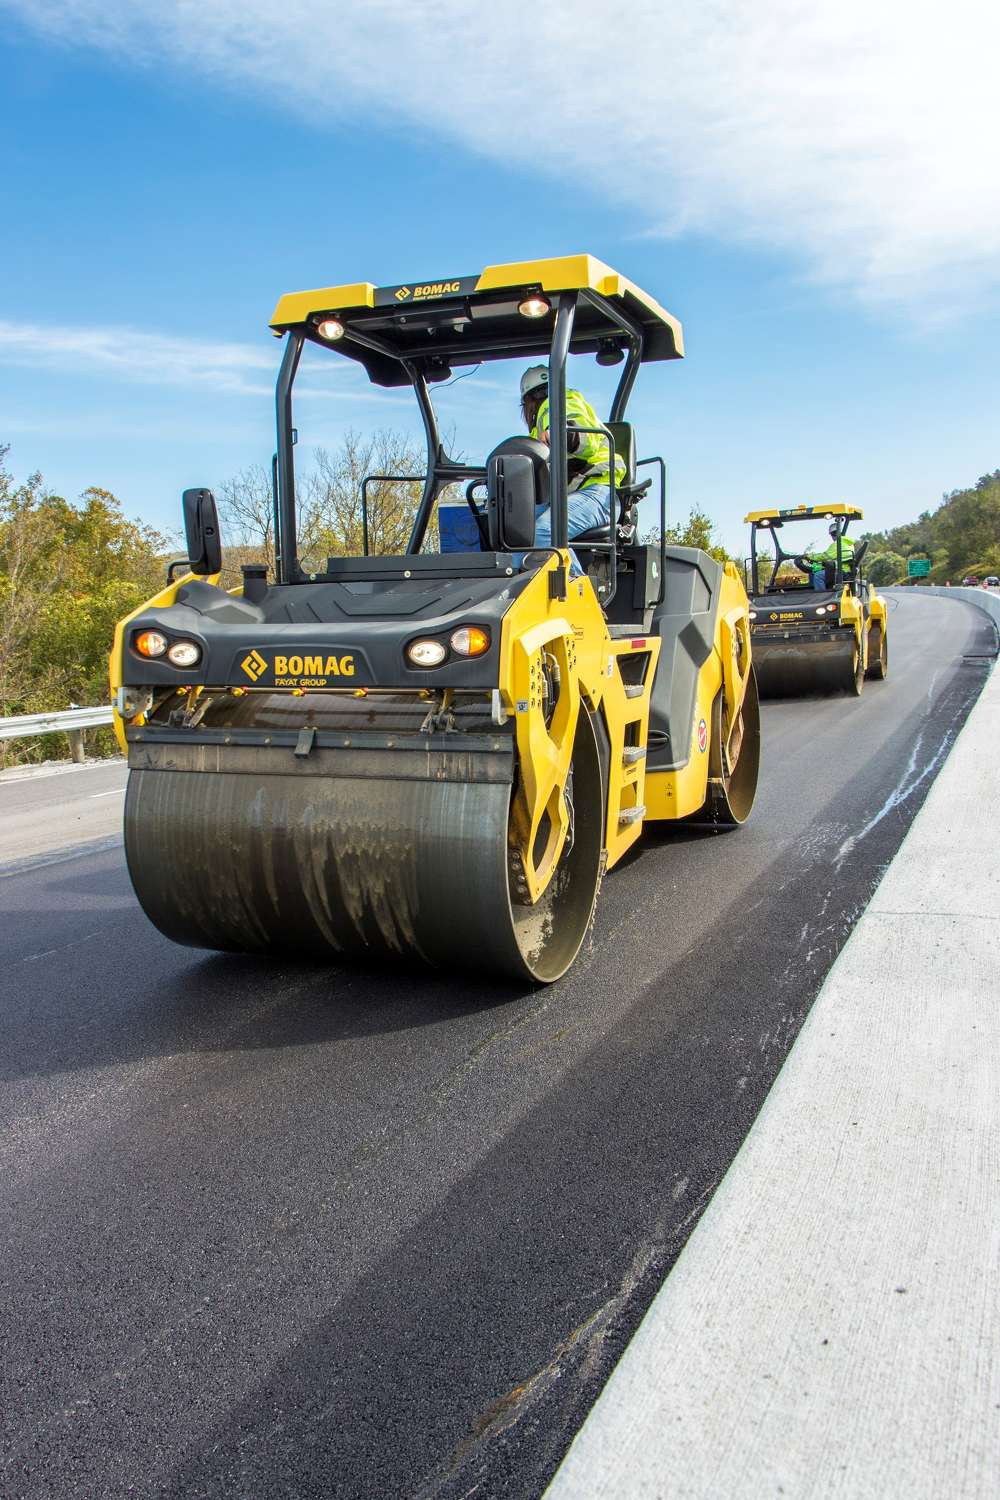 Offering design enhancements over previous series, Bomag's Dash 5 rollers increase productivity, improve mat quality and reduce service time.